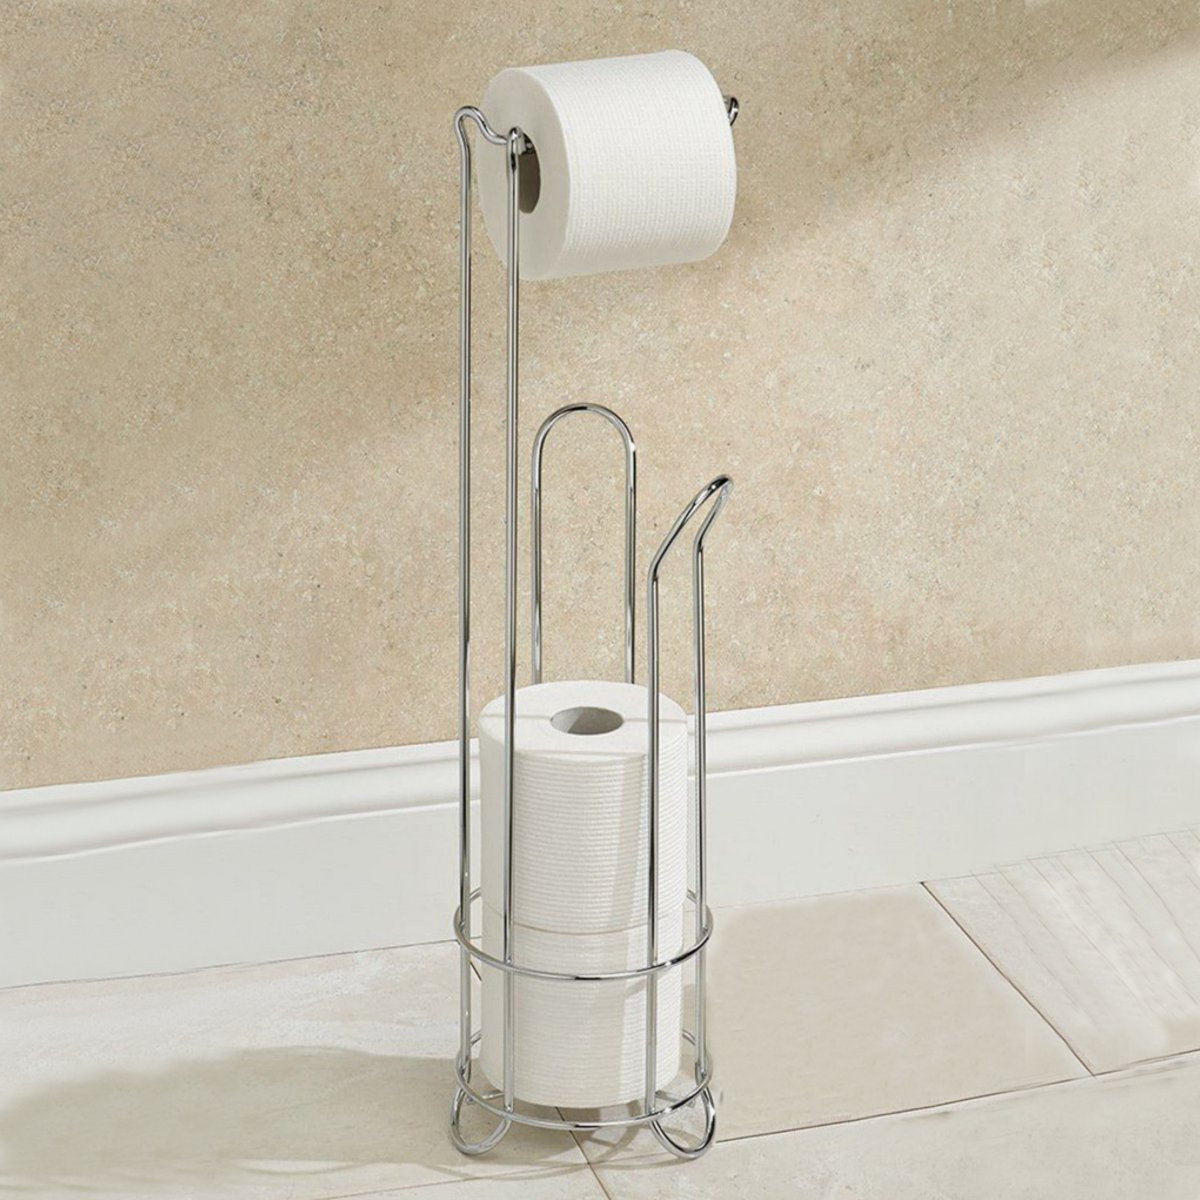 Covered Toilet Paper Storage Electroplating Stainless Steel Toilet Paper Holder Bathroom Tissue Storage Stand